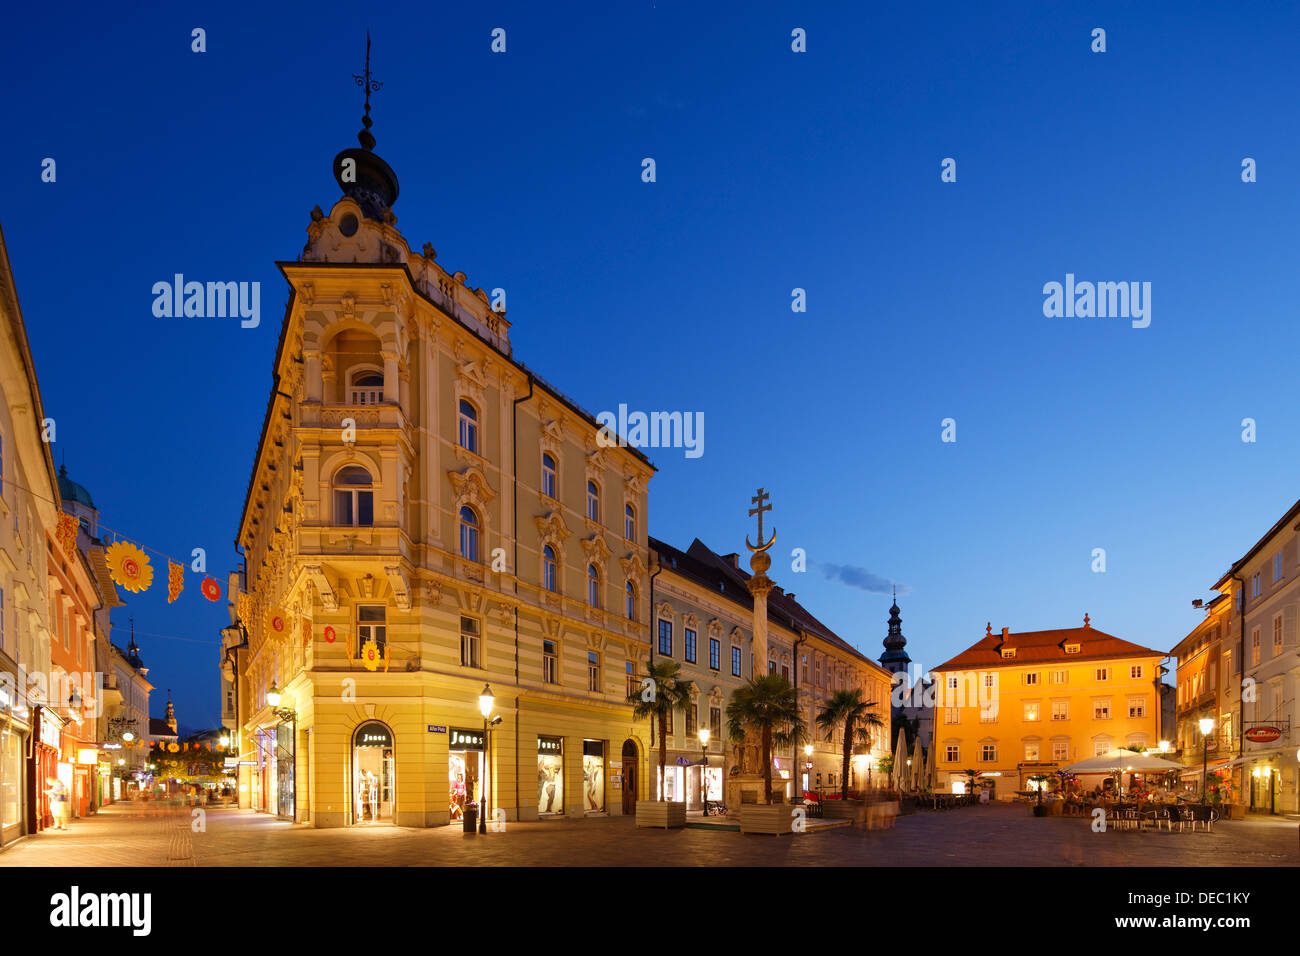 Alter Platz square, dusk, historic center, Klagenfurt, Carinthia, Austria - Stock Image